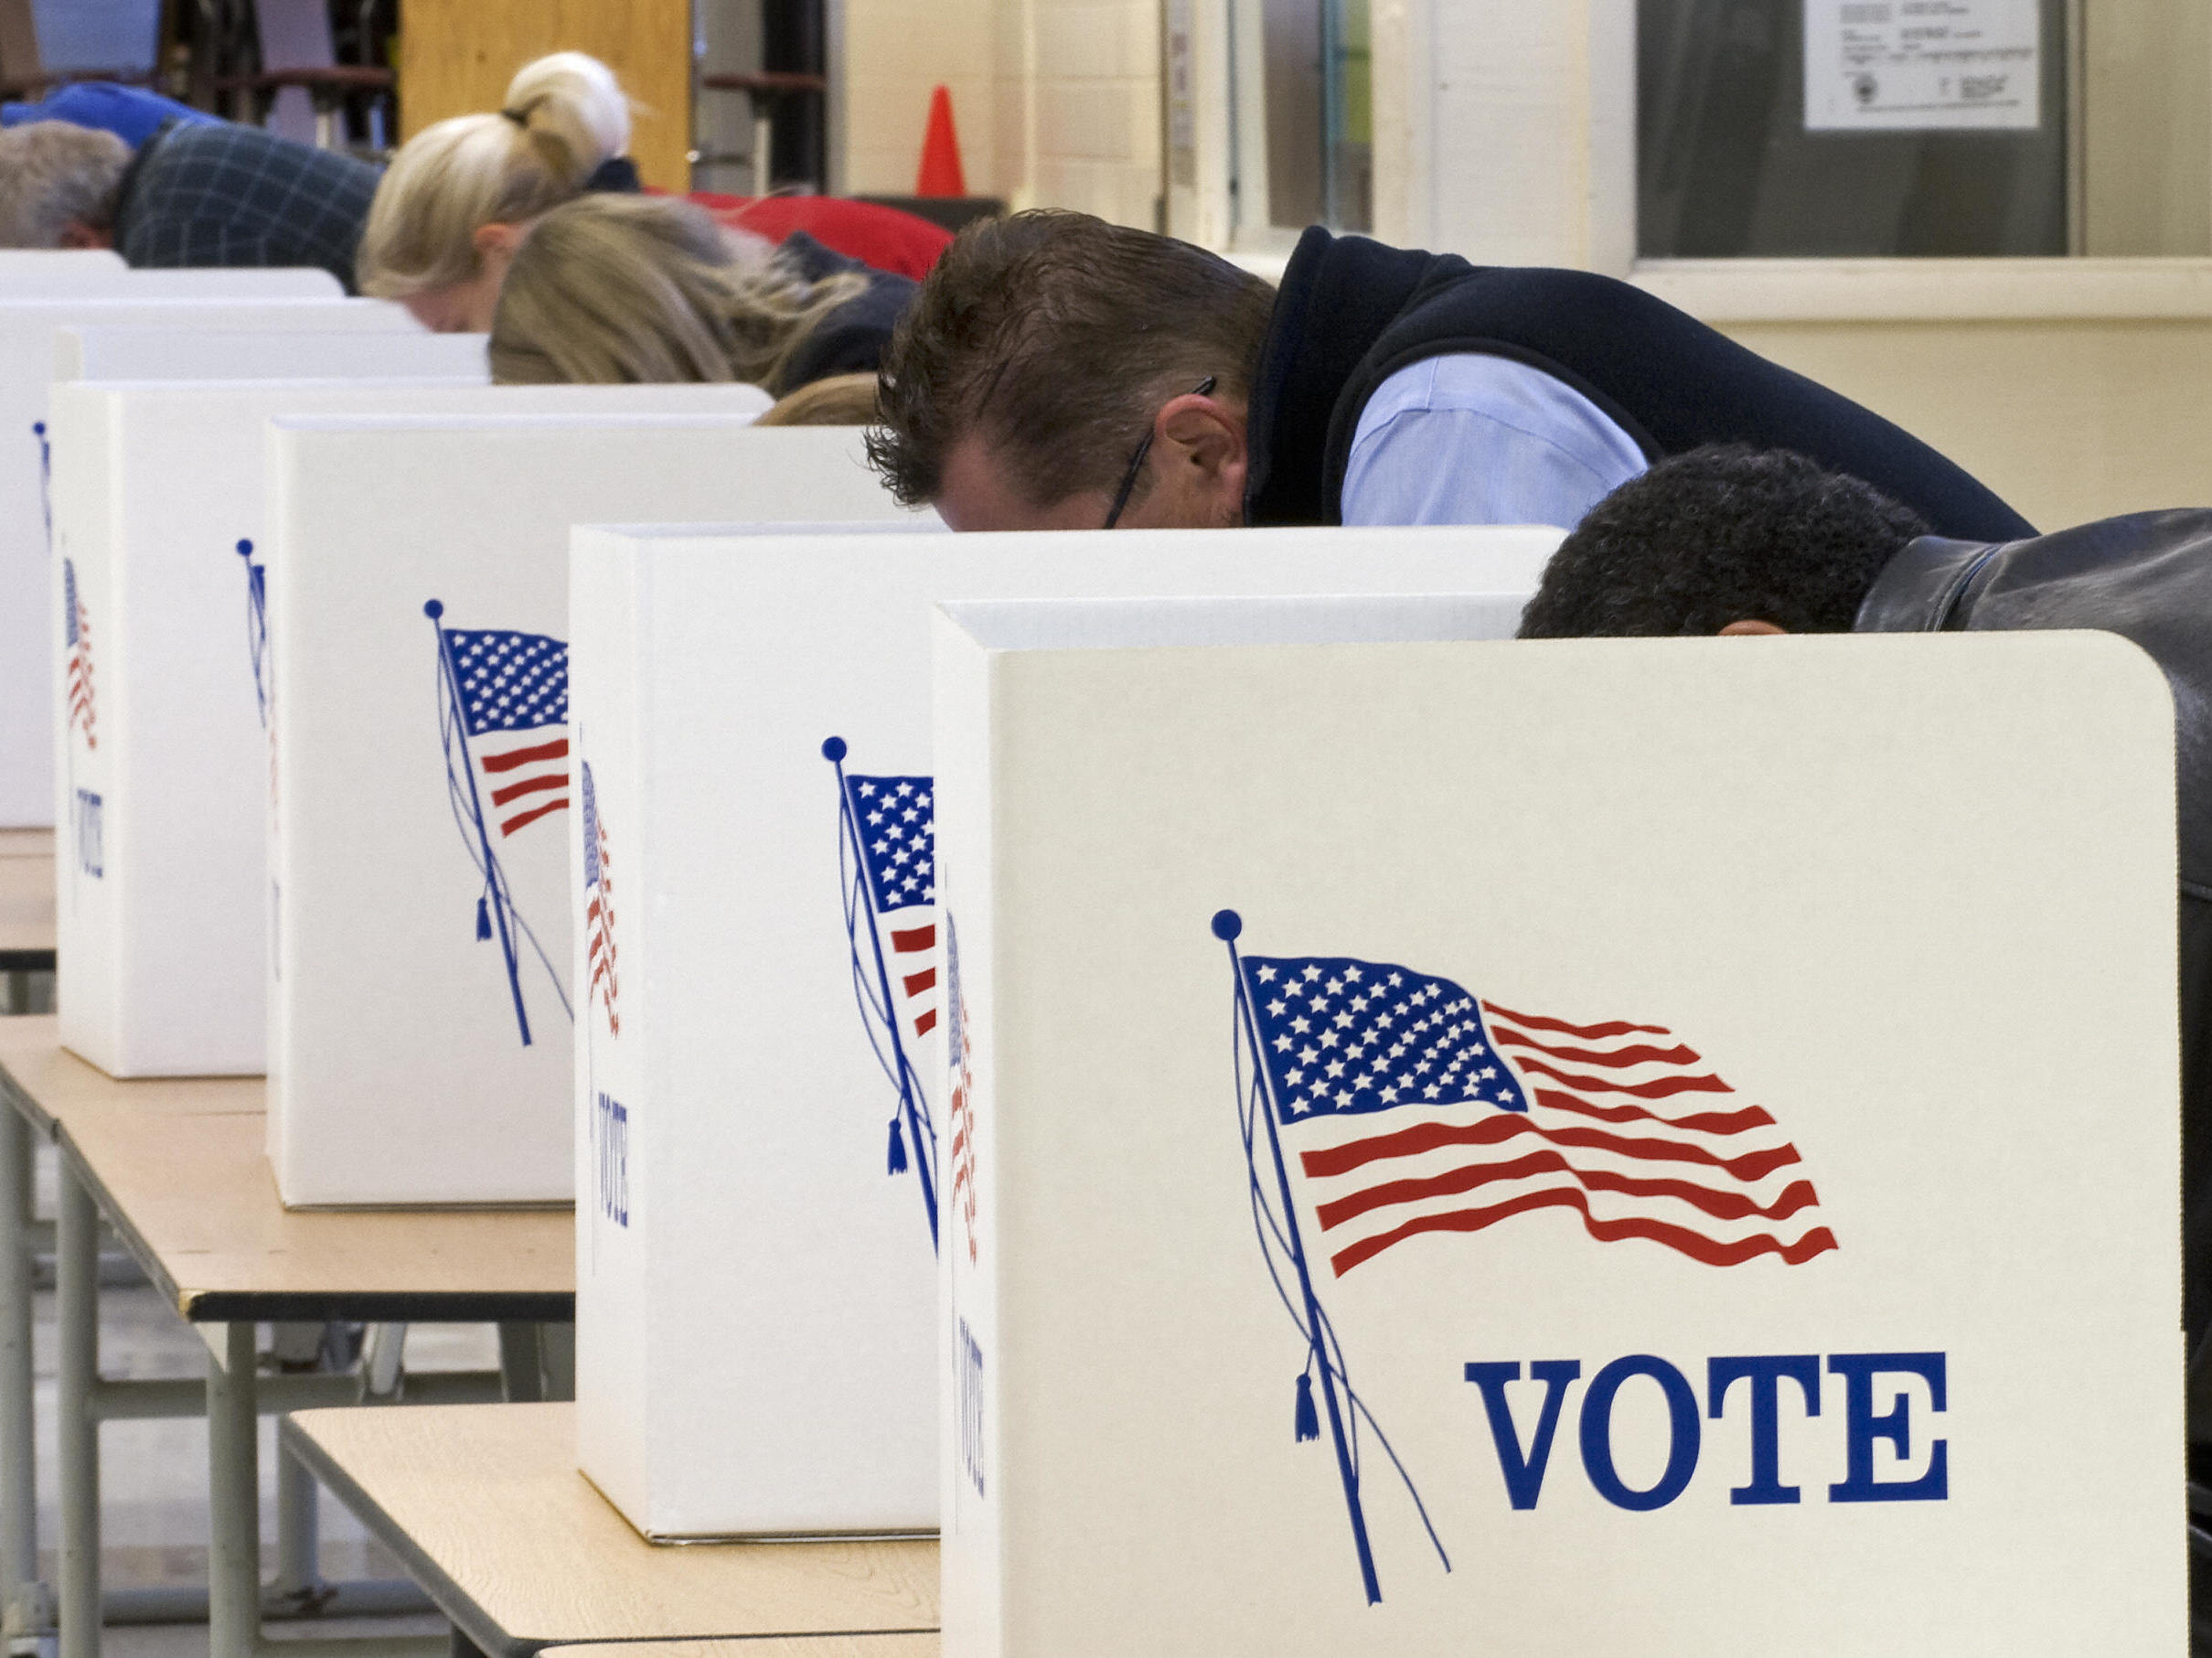 Ahead of the November presidential election, tension run high. A polls show Americans say the election is a causing stress.